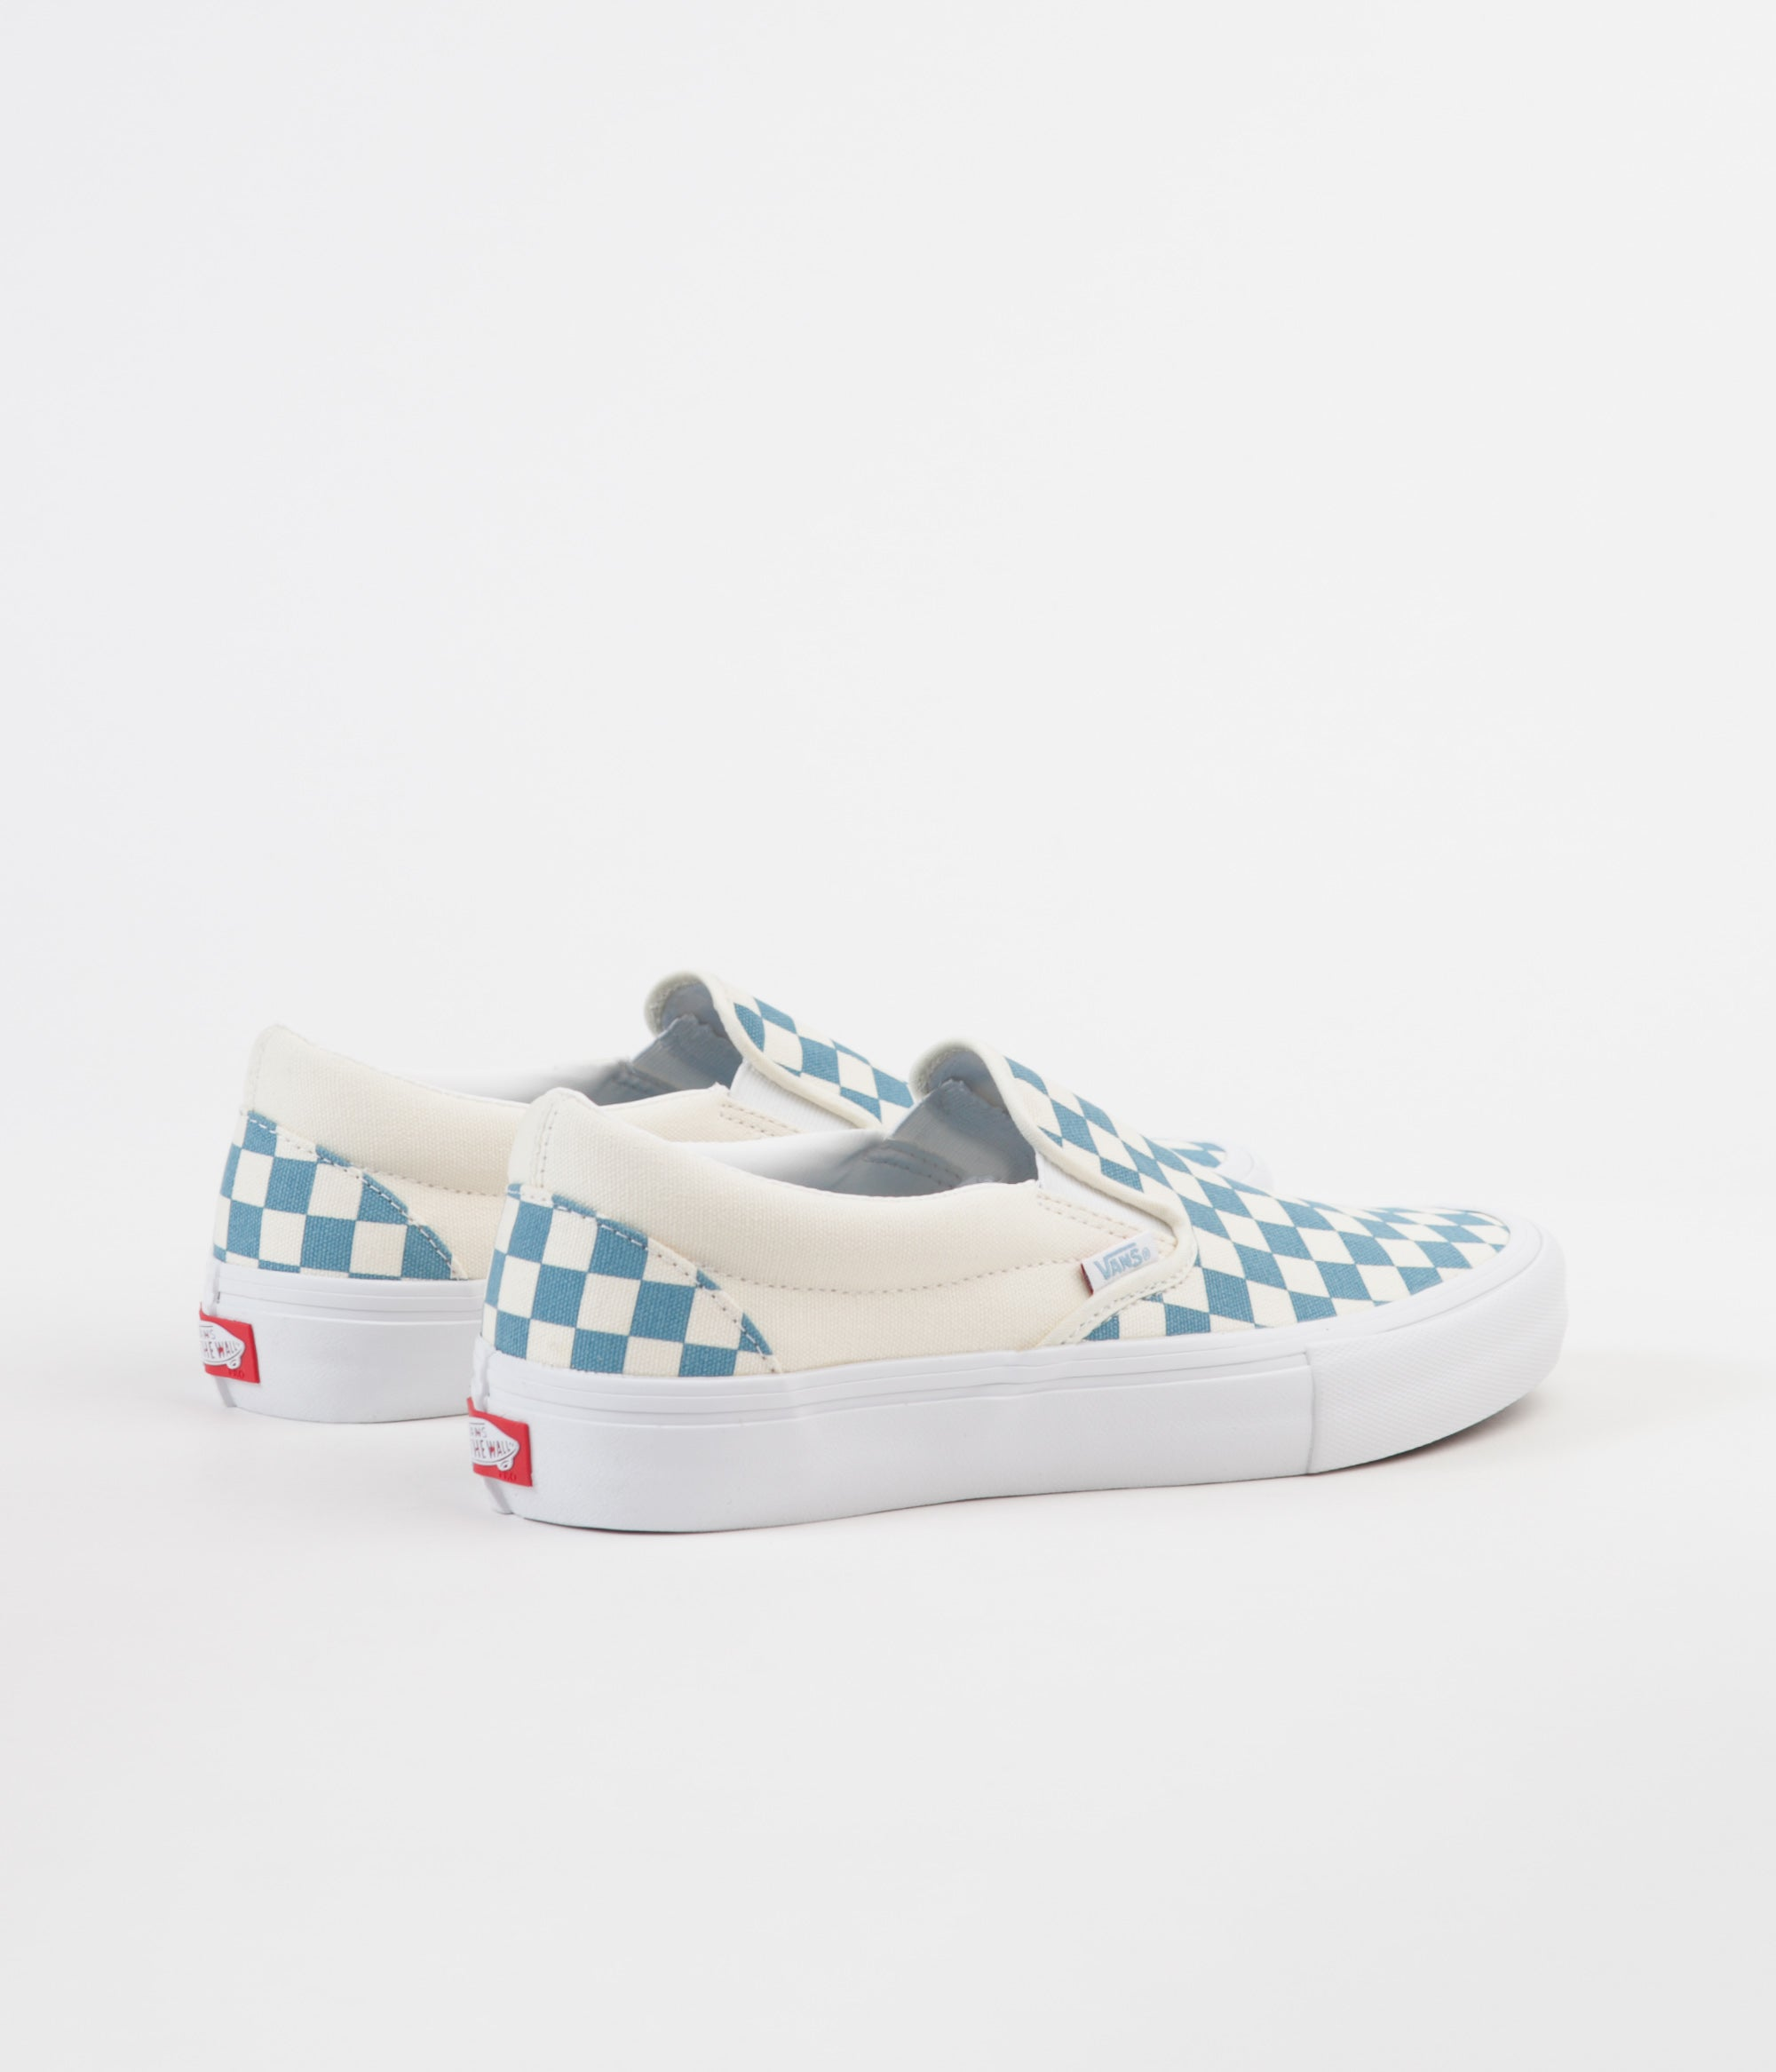 c69a8830152 ... Vans Slip On Pro Checkerboard Shoes - Adriatic Blue   White ...